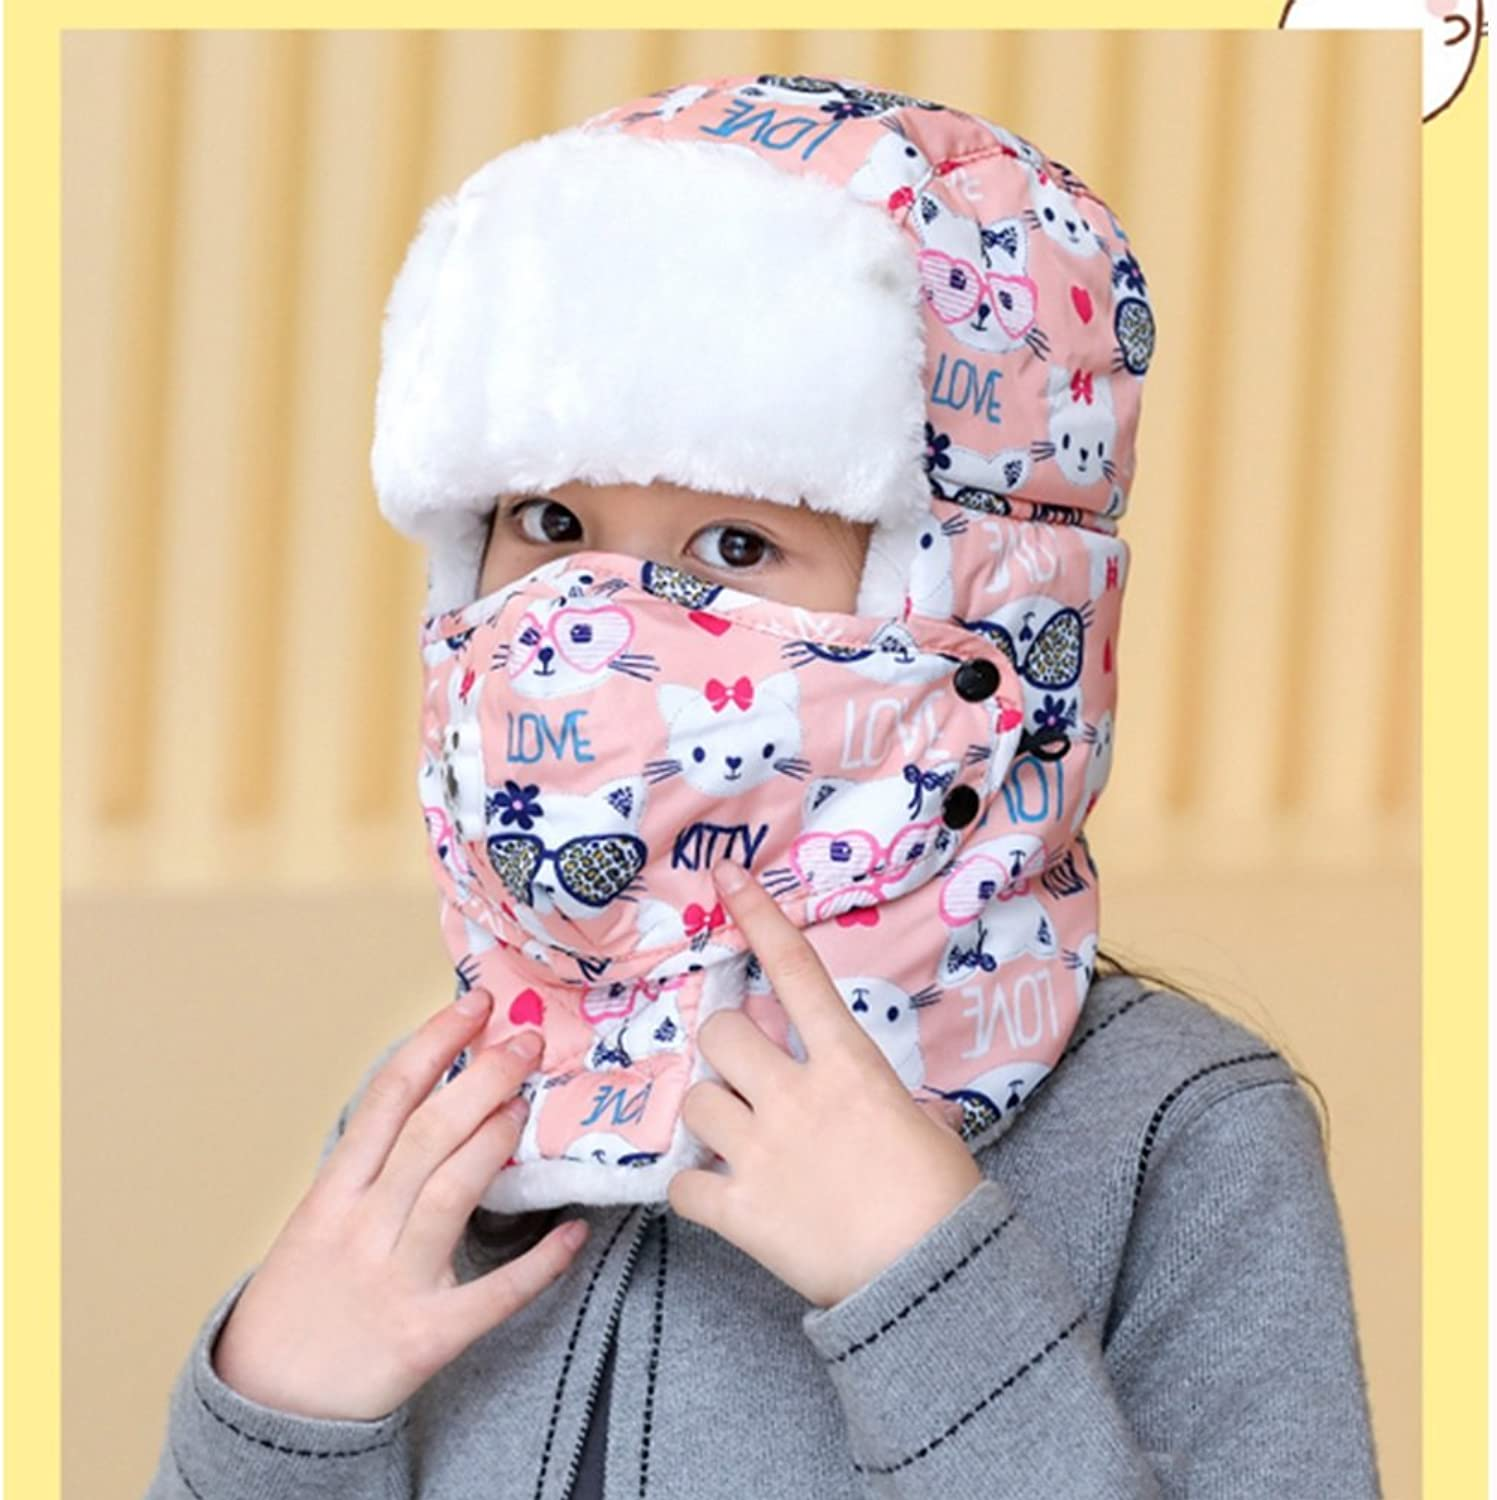 - CJC Chapeau + Masque Enfants Adolescent Garde Au Au Au Chaud color De Camouflage épaissir Huit colors Soft Comfortable (color   2) a8f7f5